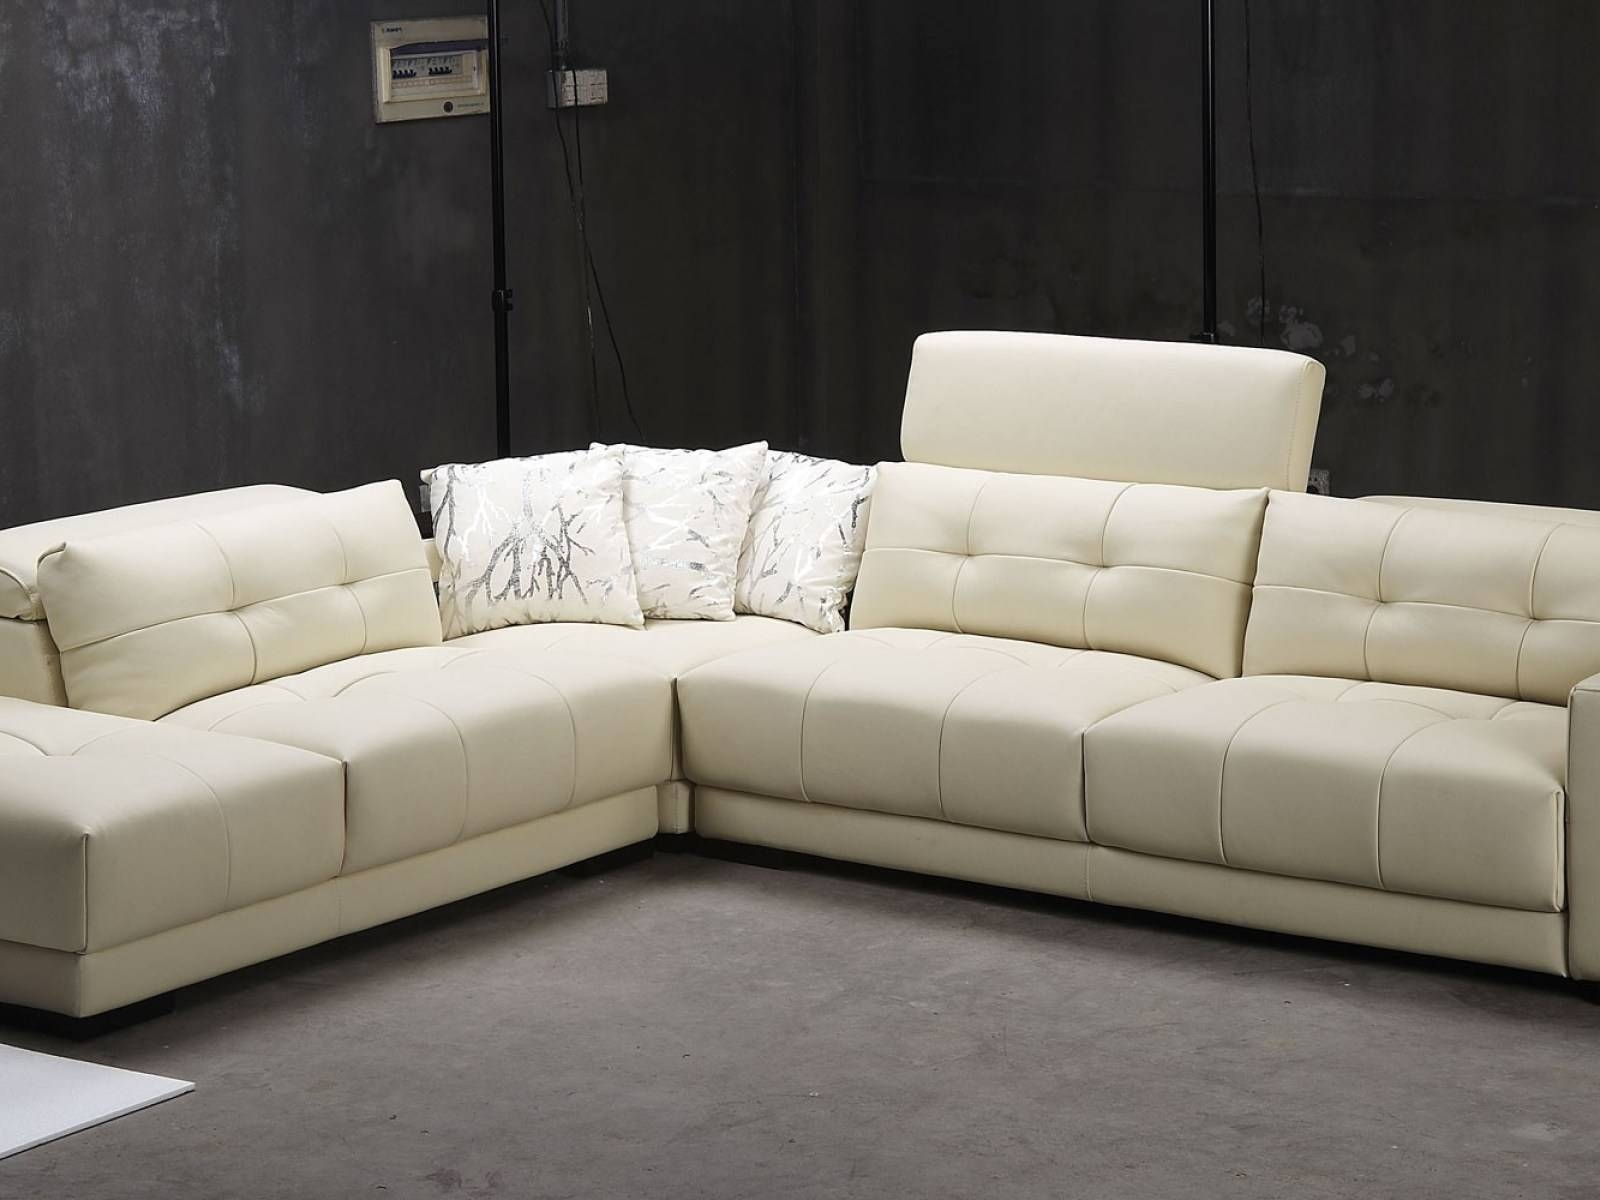 Sofa: Comfort And Style Is Evident In This Dynamic With Tufted inside Round Sectional Sofa Bed (Image 24 of 25)